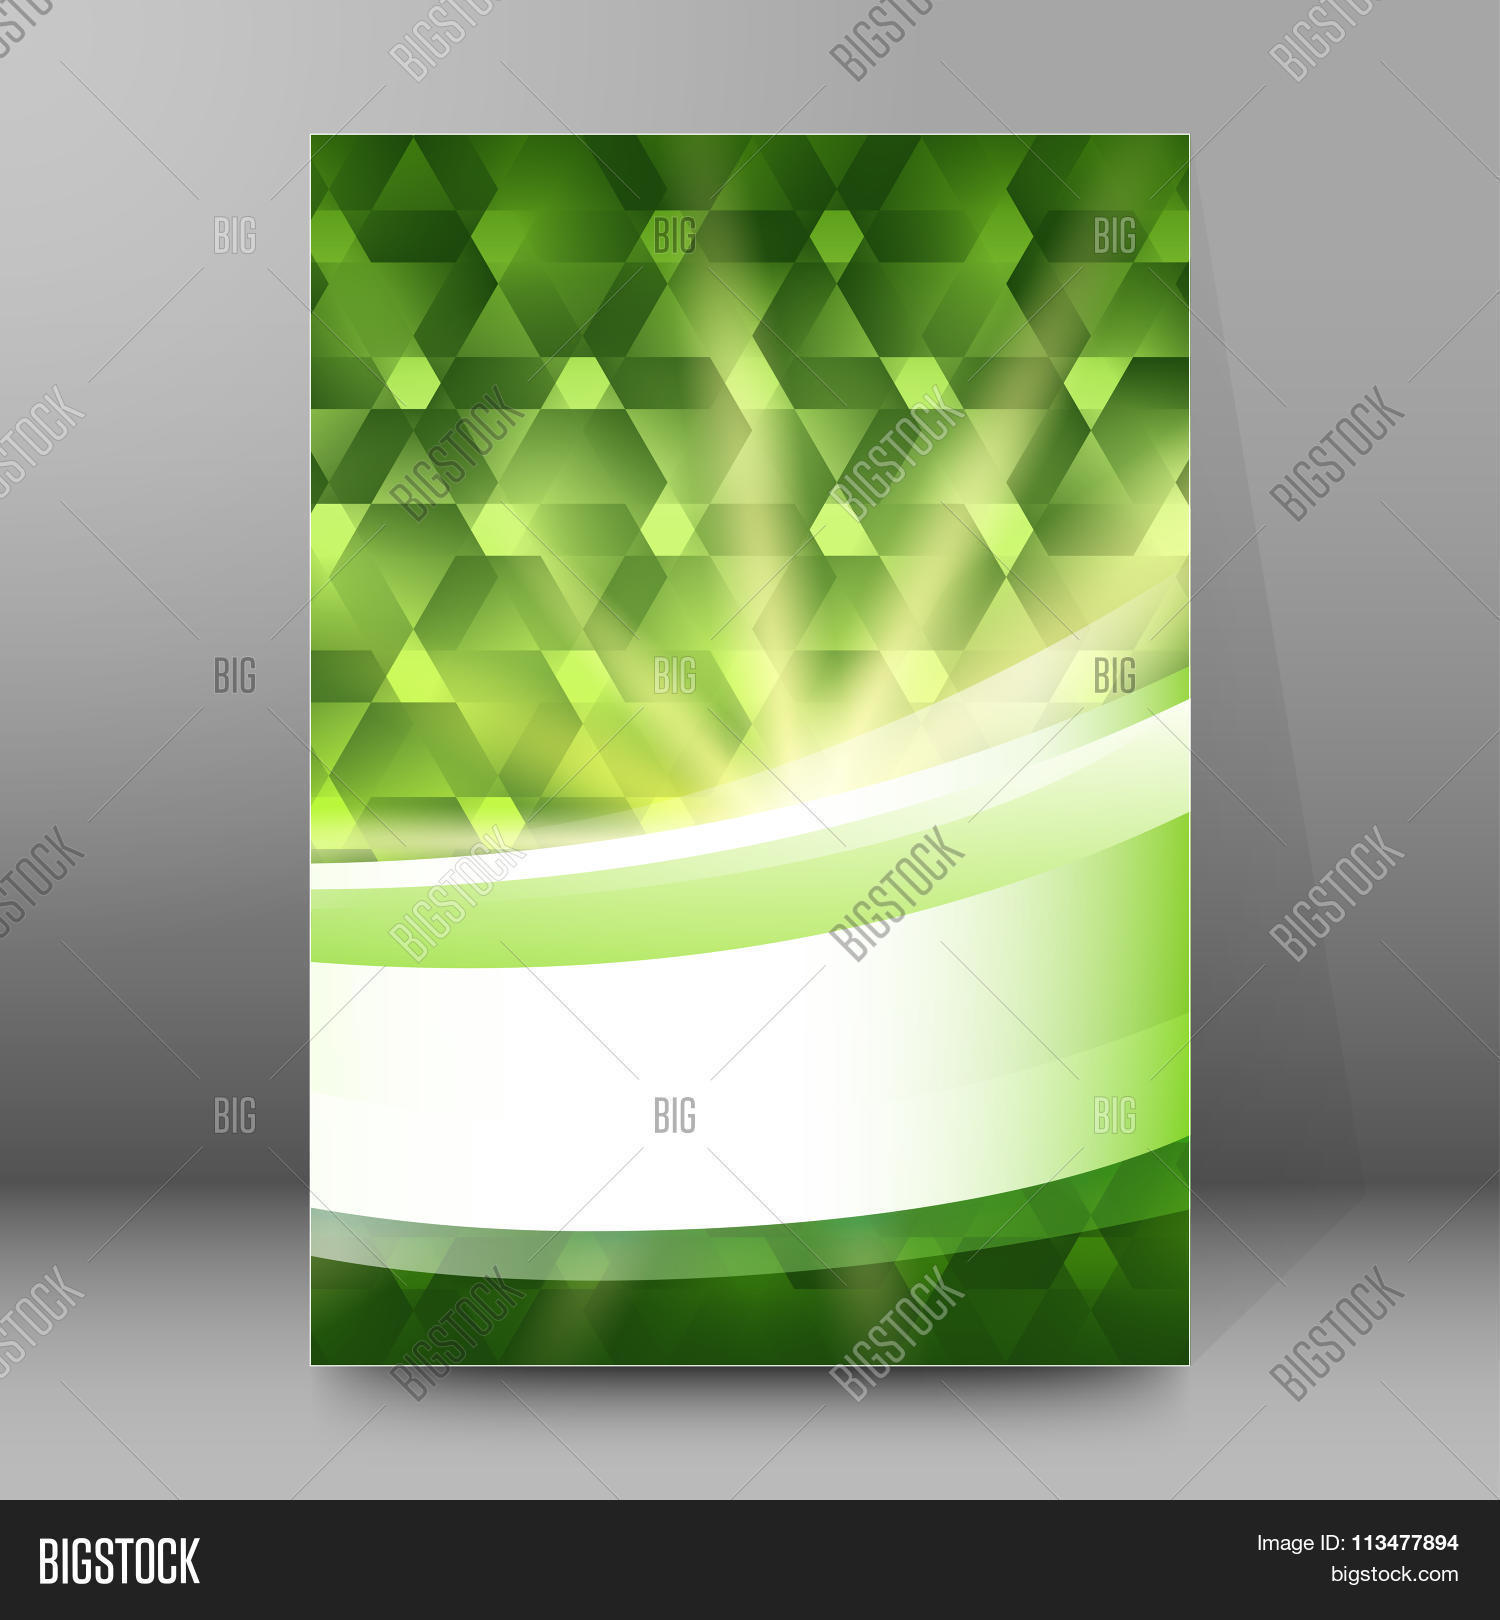 green light shapes cover page brochure background stock vector green light shapes cover page brochure background